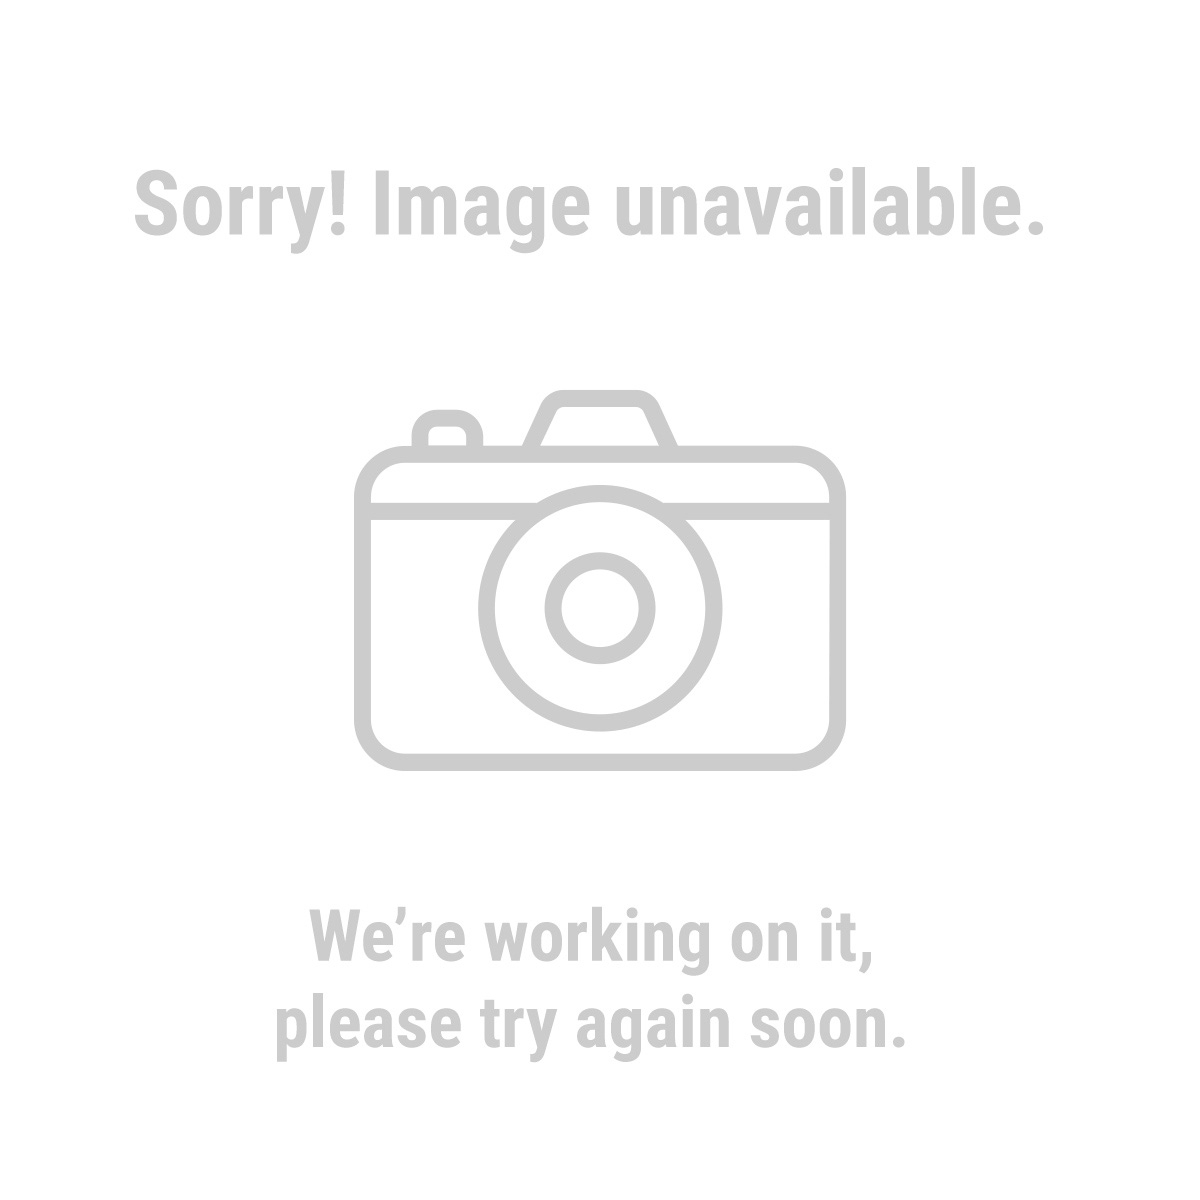 Greenwood 61905 3/4 in. x 50 ft. Commercial Duty Garden Hose